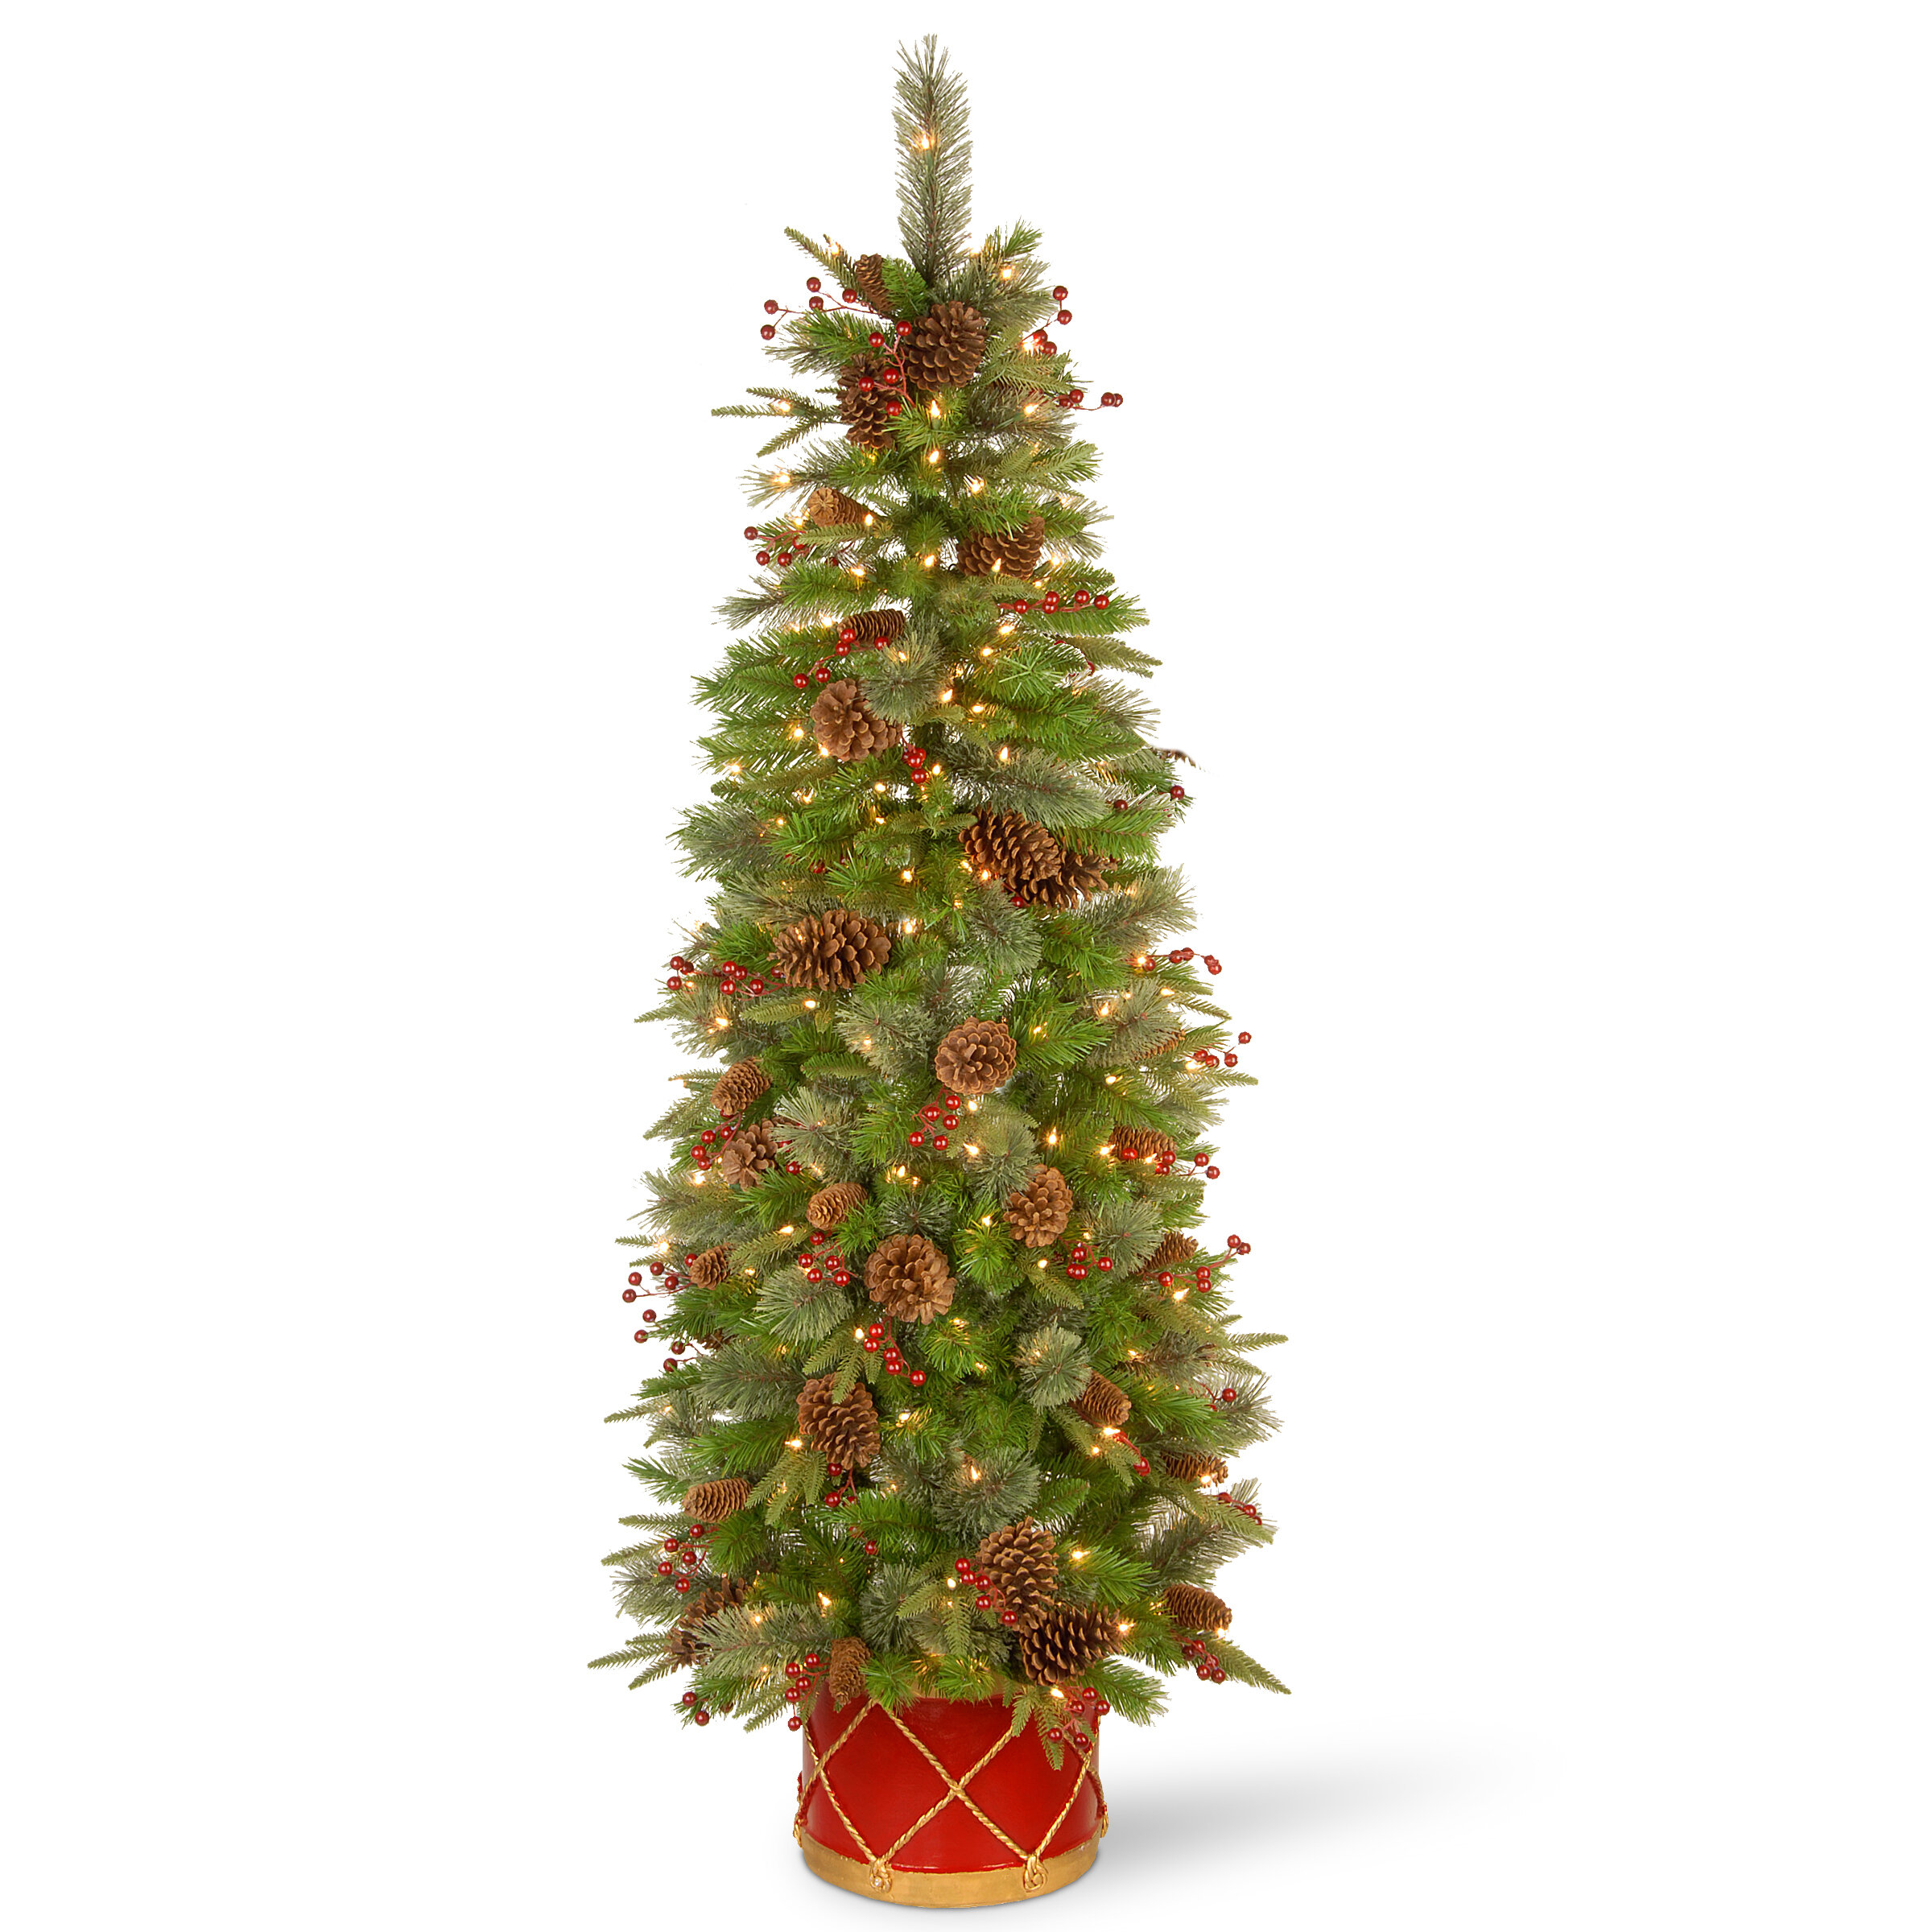 Half Christmas Tree.6 Ft Colonial Slim Half Artificial Christmas Tree With Clear Lights